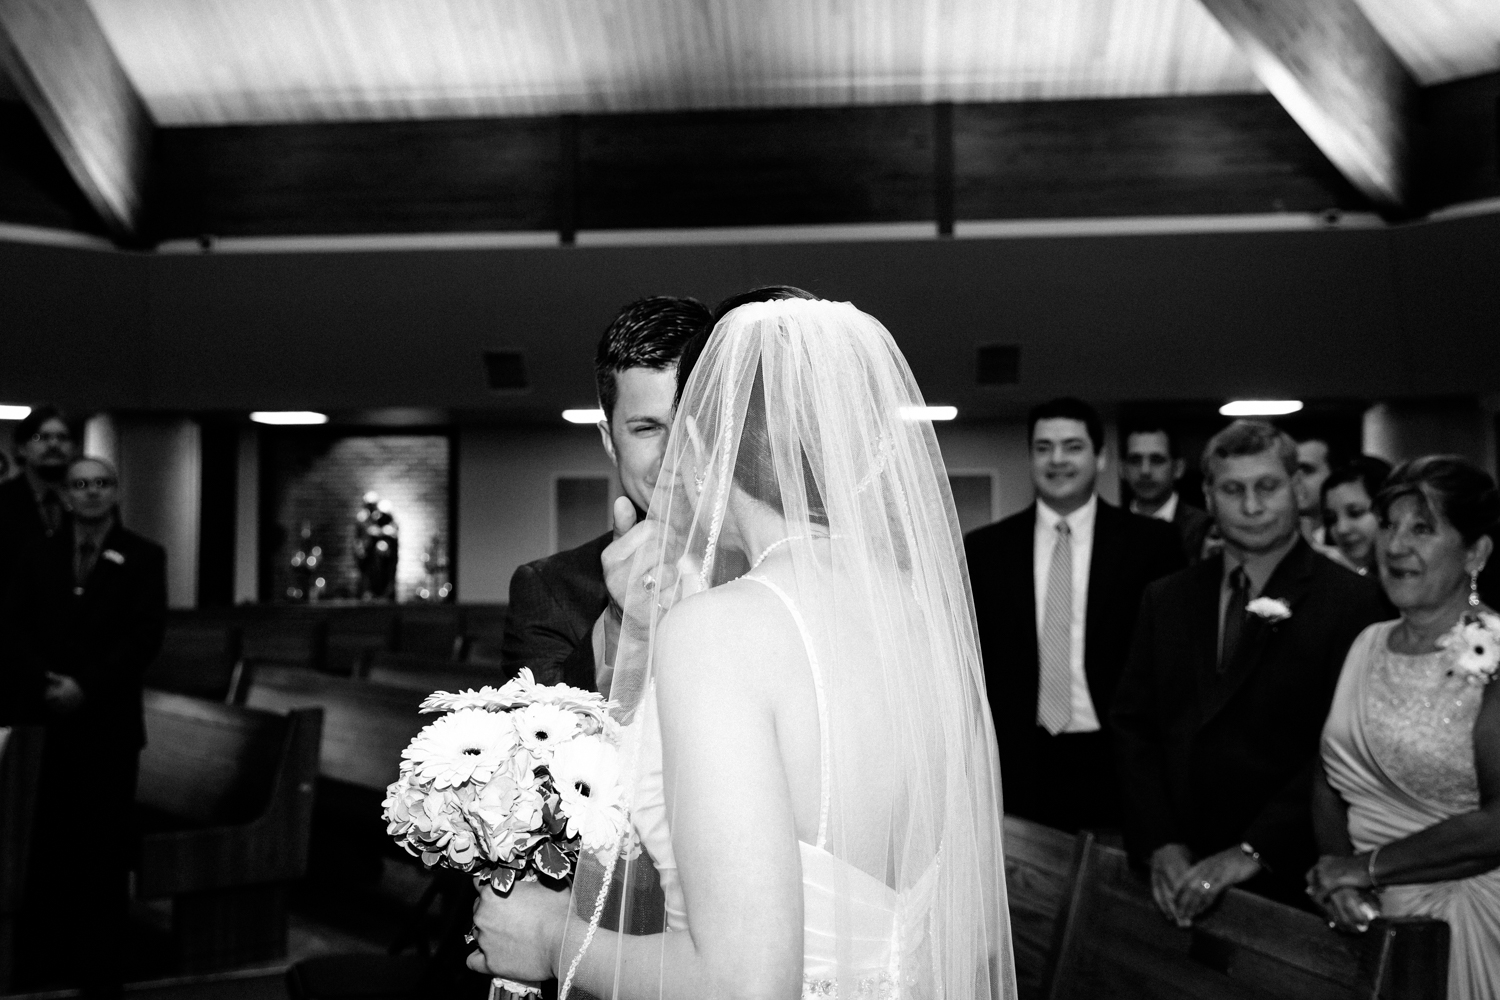 A touching bride and groom moment at Holy Family Church in Syracuse, NY.